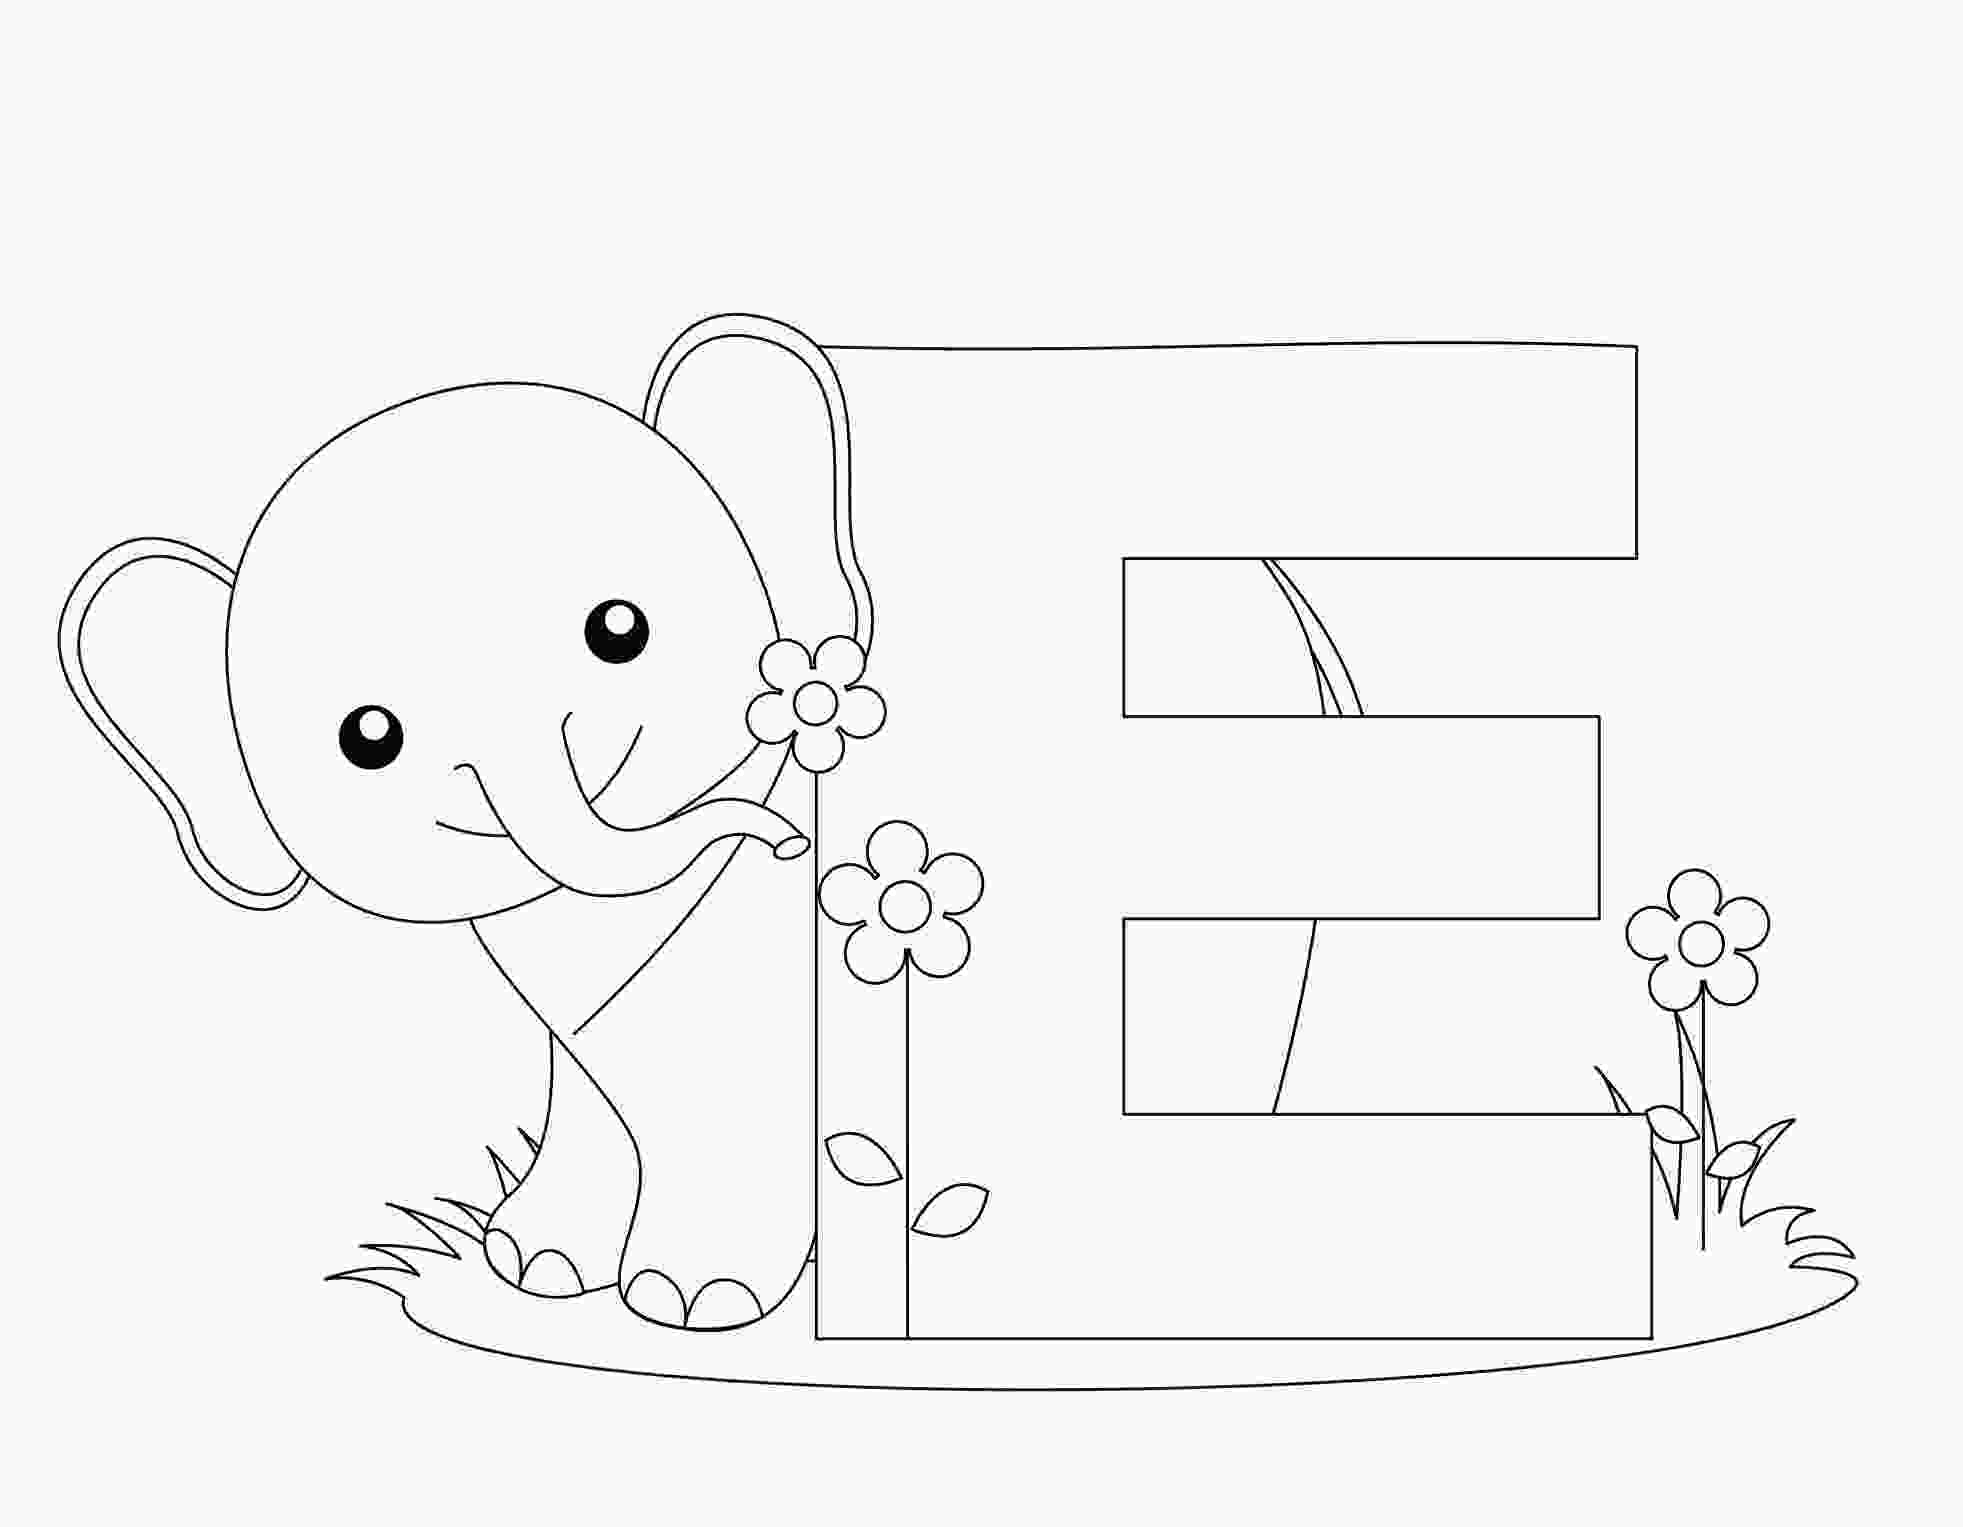 kindergarten alphabet coloring pages free printable alphabet coloring pages for kids best 3